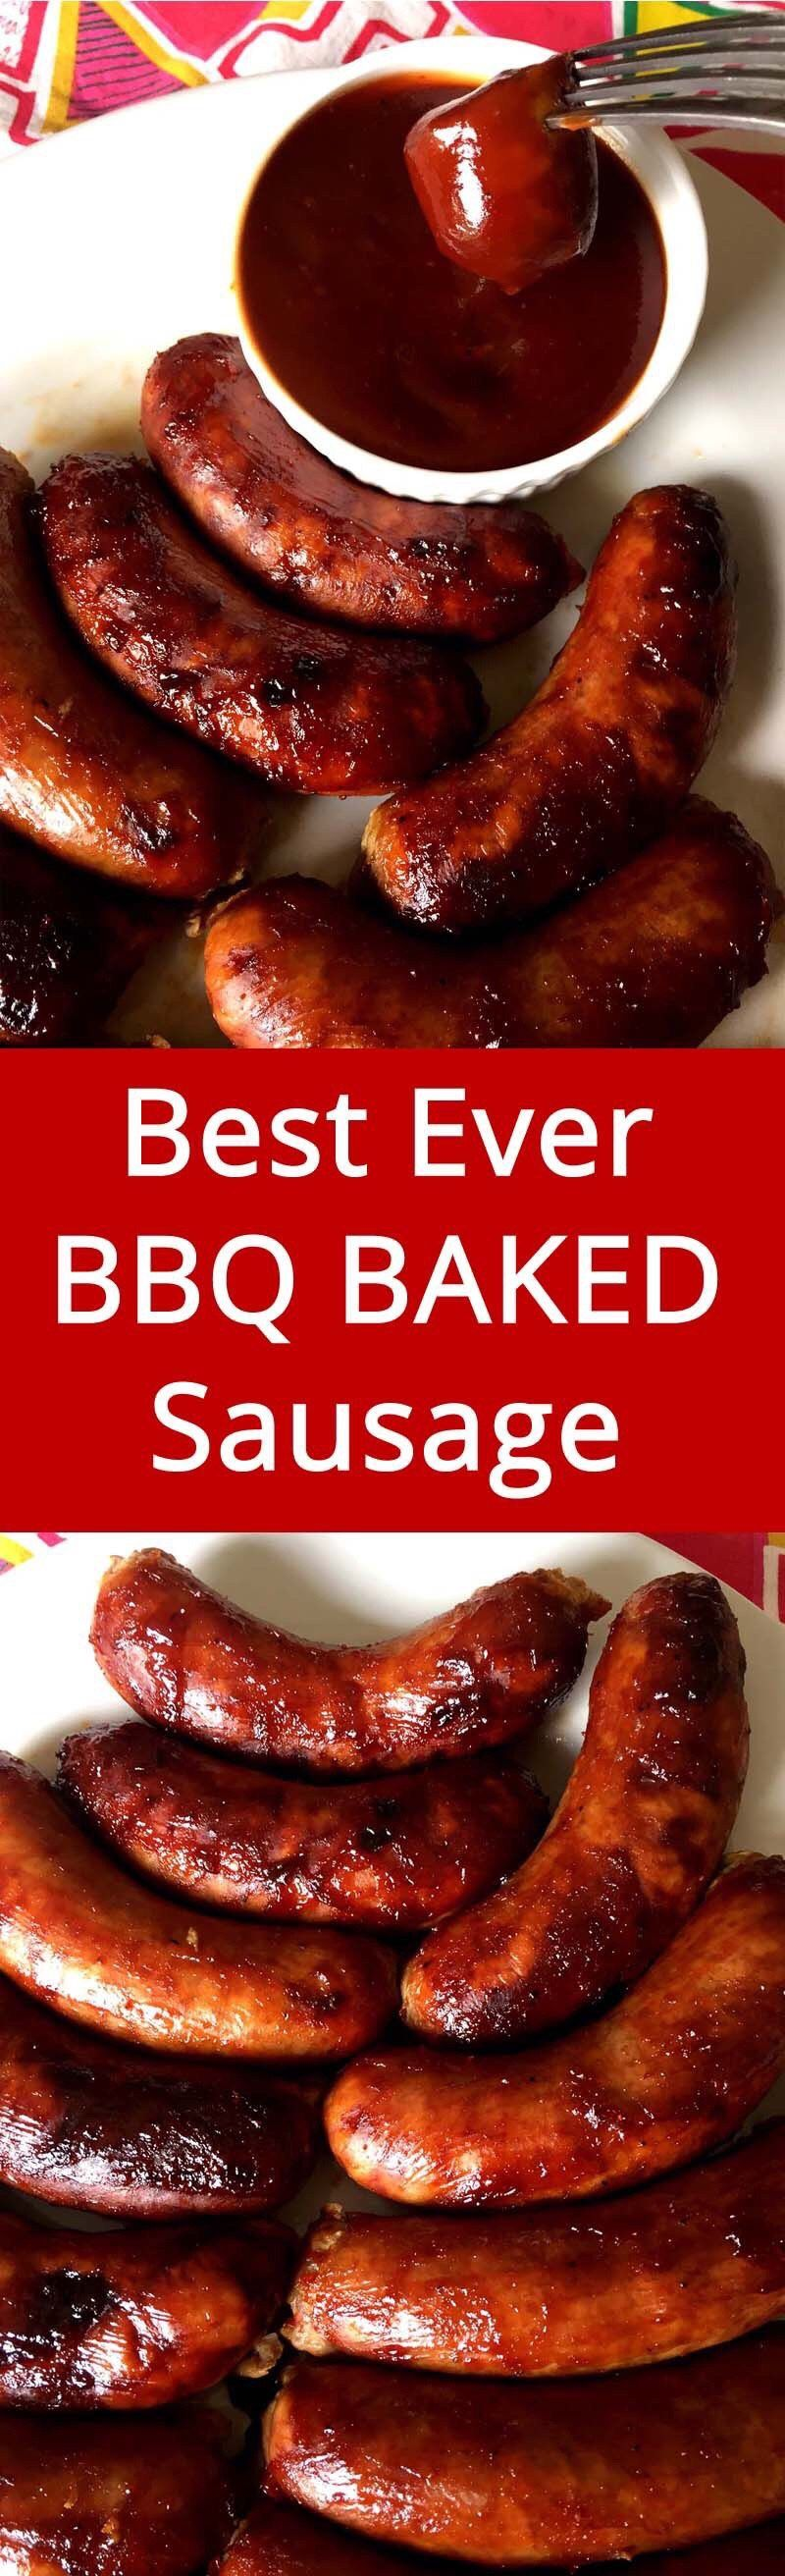 Baked bbq barbecued sausages recipe bbq sausage recipe